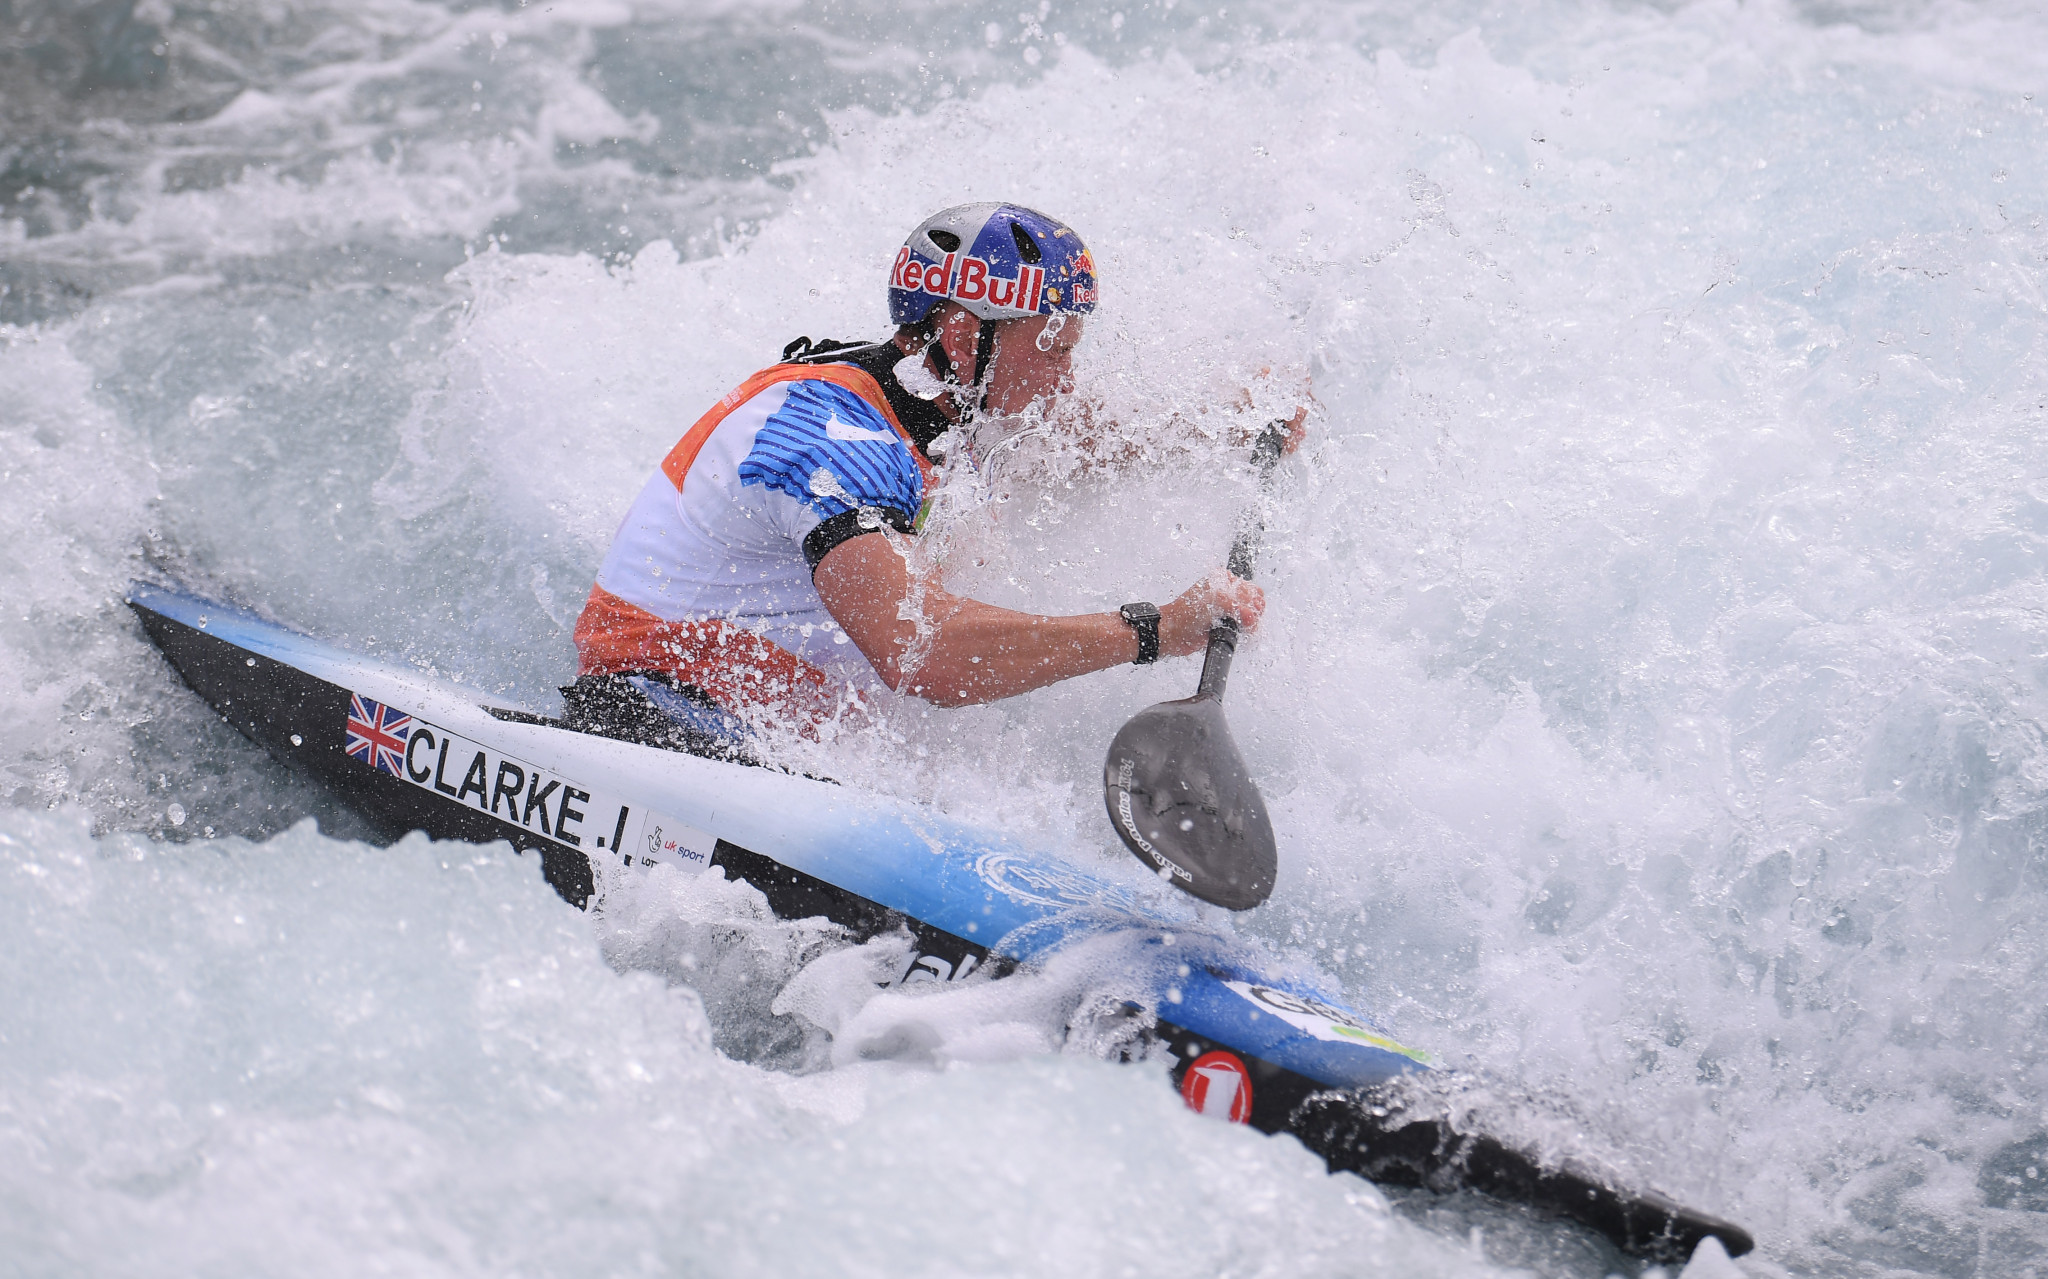 Olympic gold medallist Joe Clarke of Britain showed little sign of injury as he posted the fastest time in the men's K1 ©Getty Images